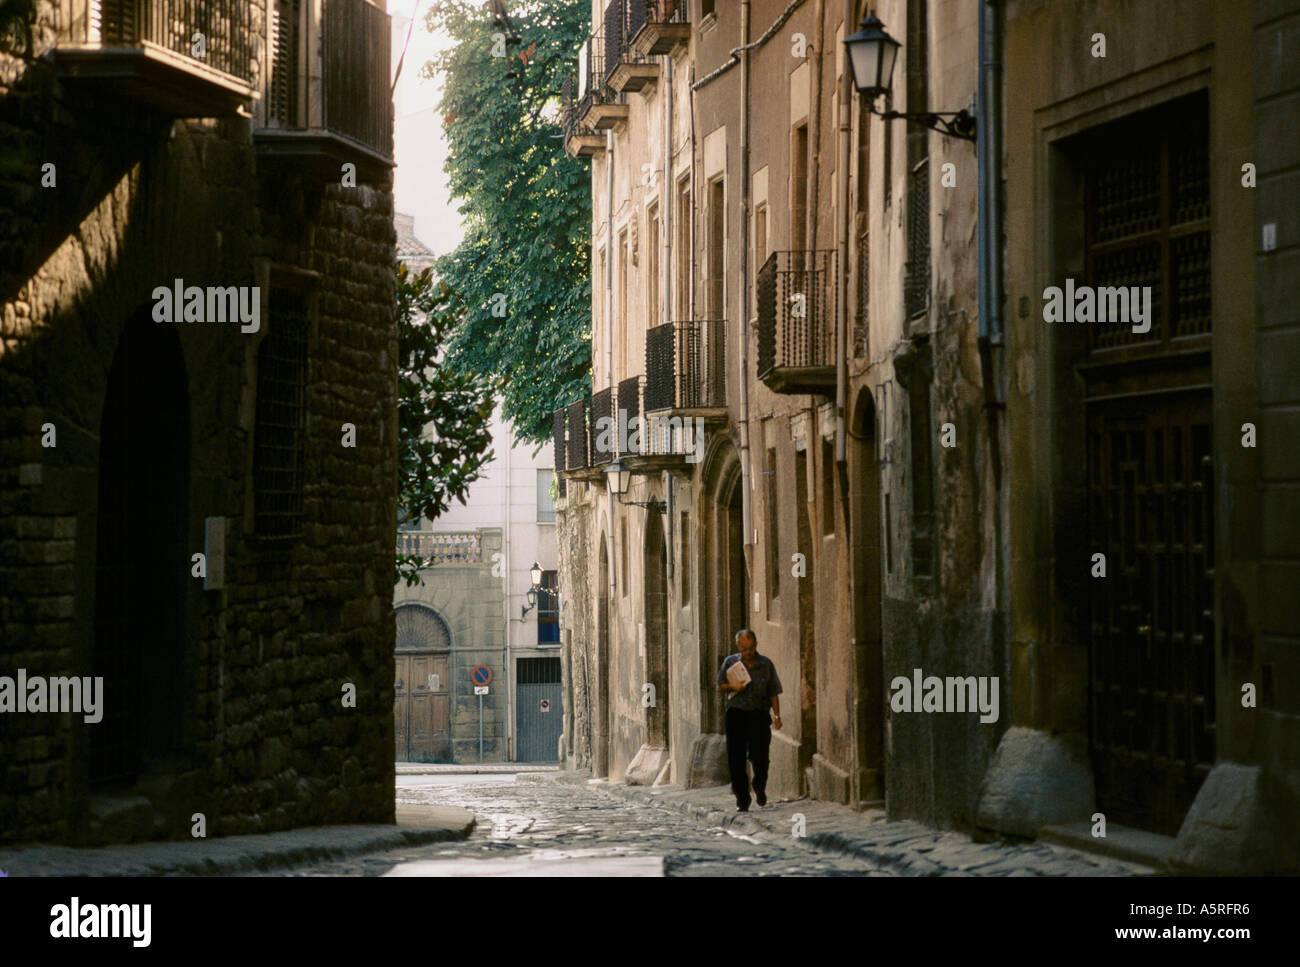 MAN WALKING IN THE OLD TOWN OF VIC, CATALUNYA SPAIN - Stock Image